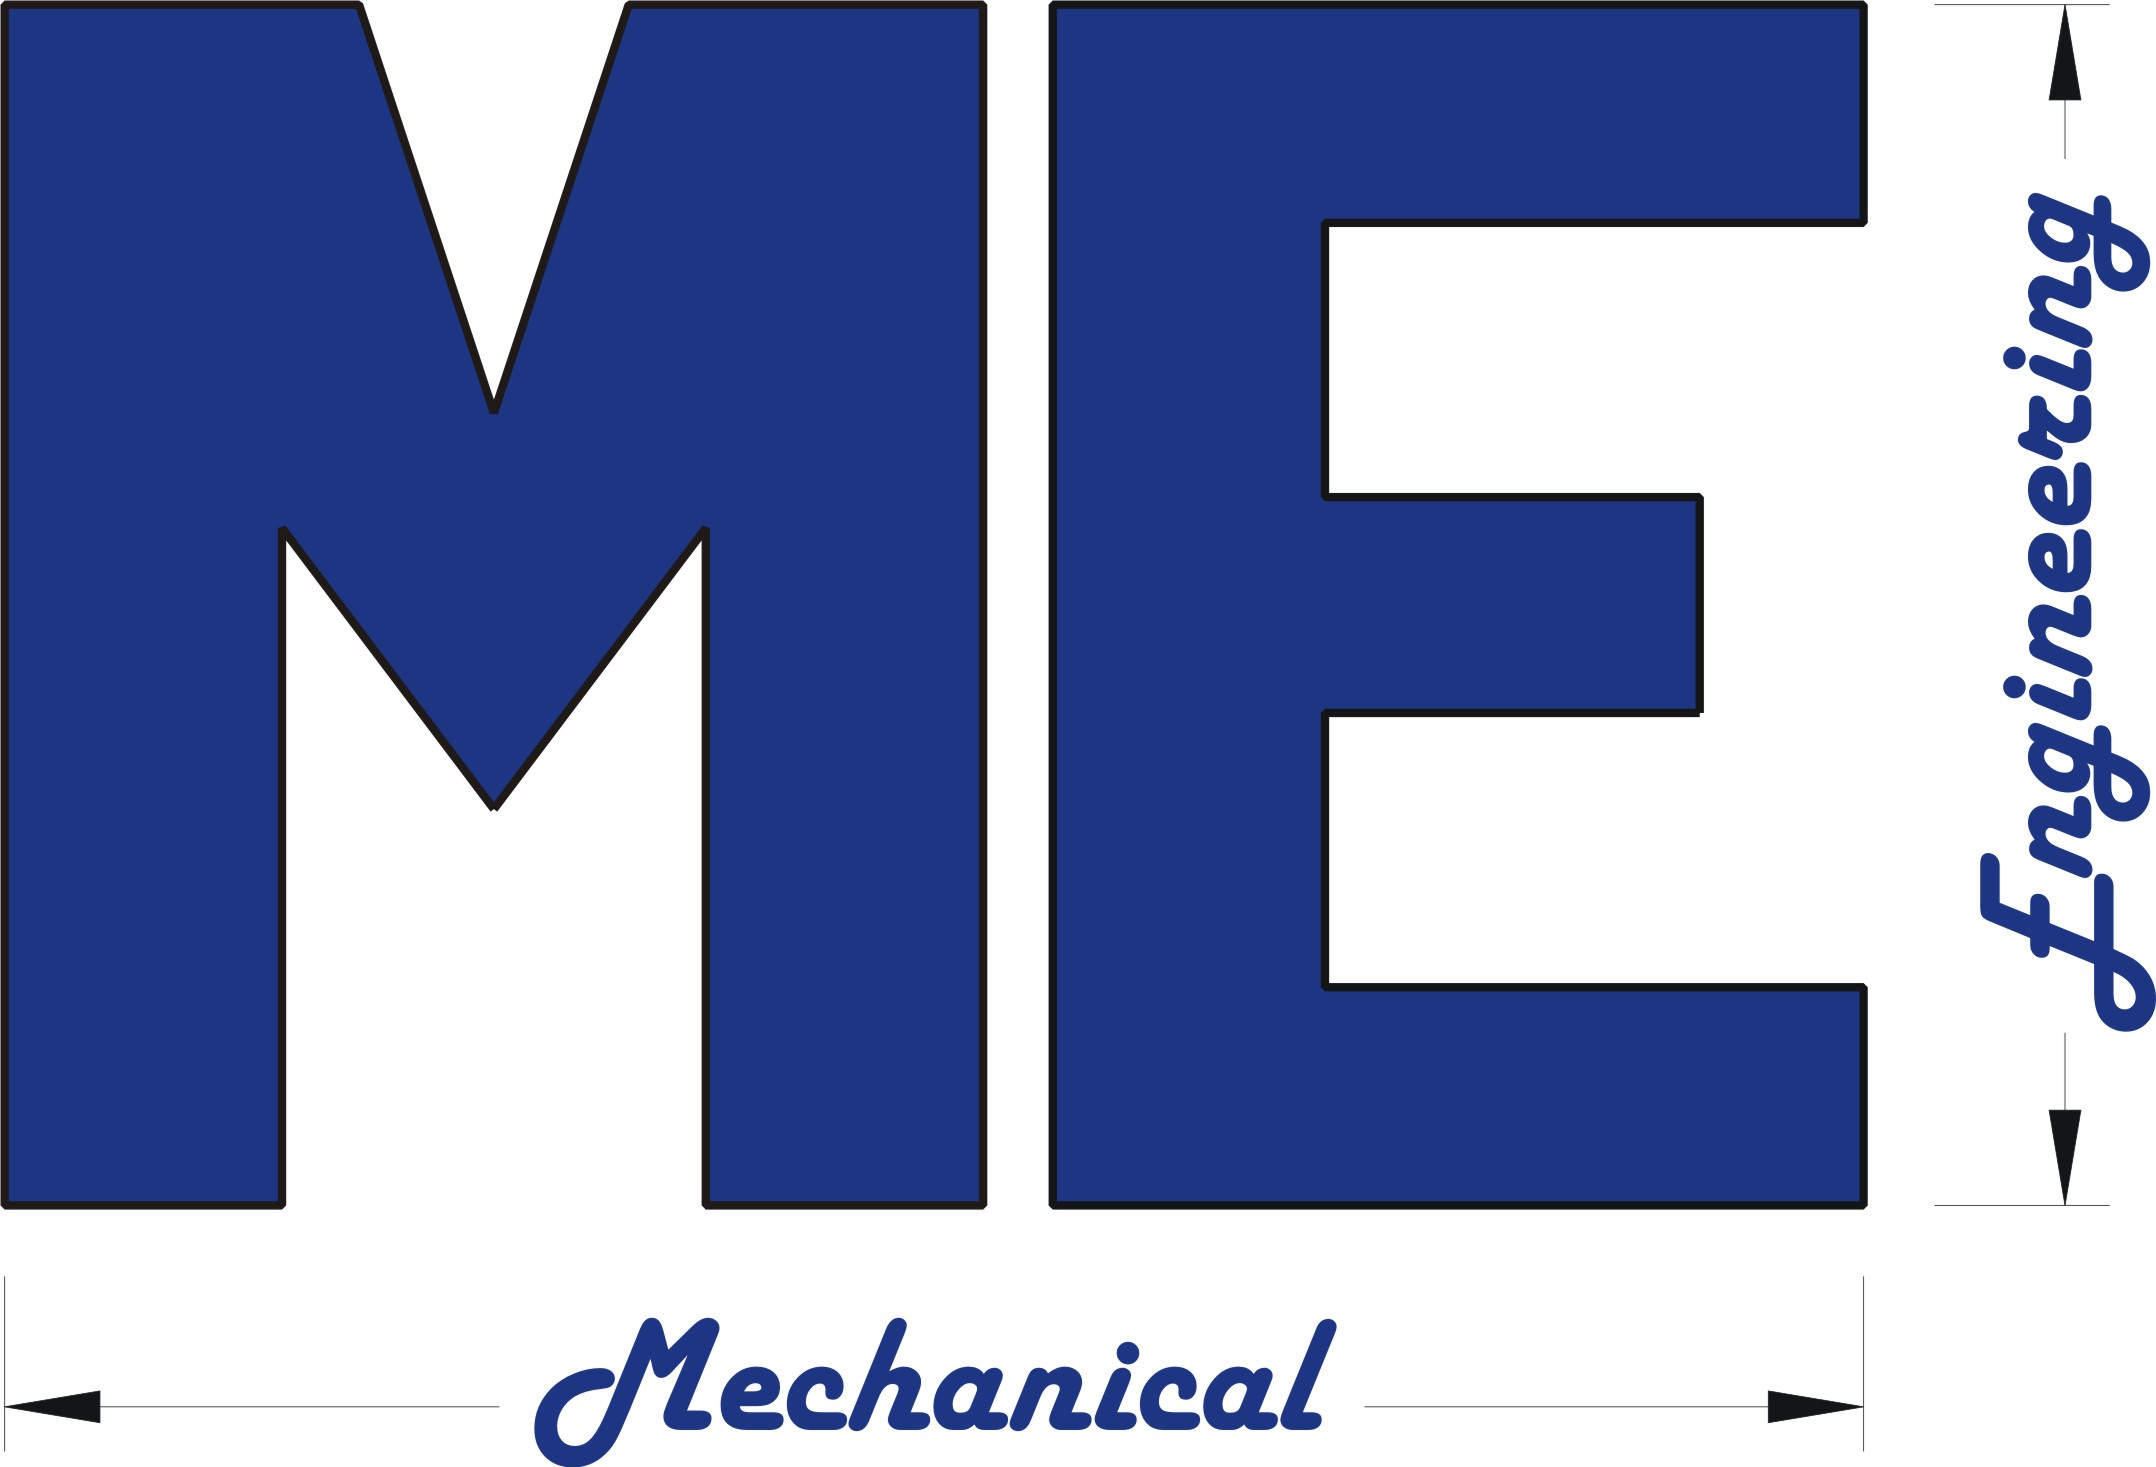 mechanical engineering logo clipart best mechanical engineering exam help mechanical engineering assignment help mechanical engineering project help